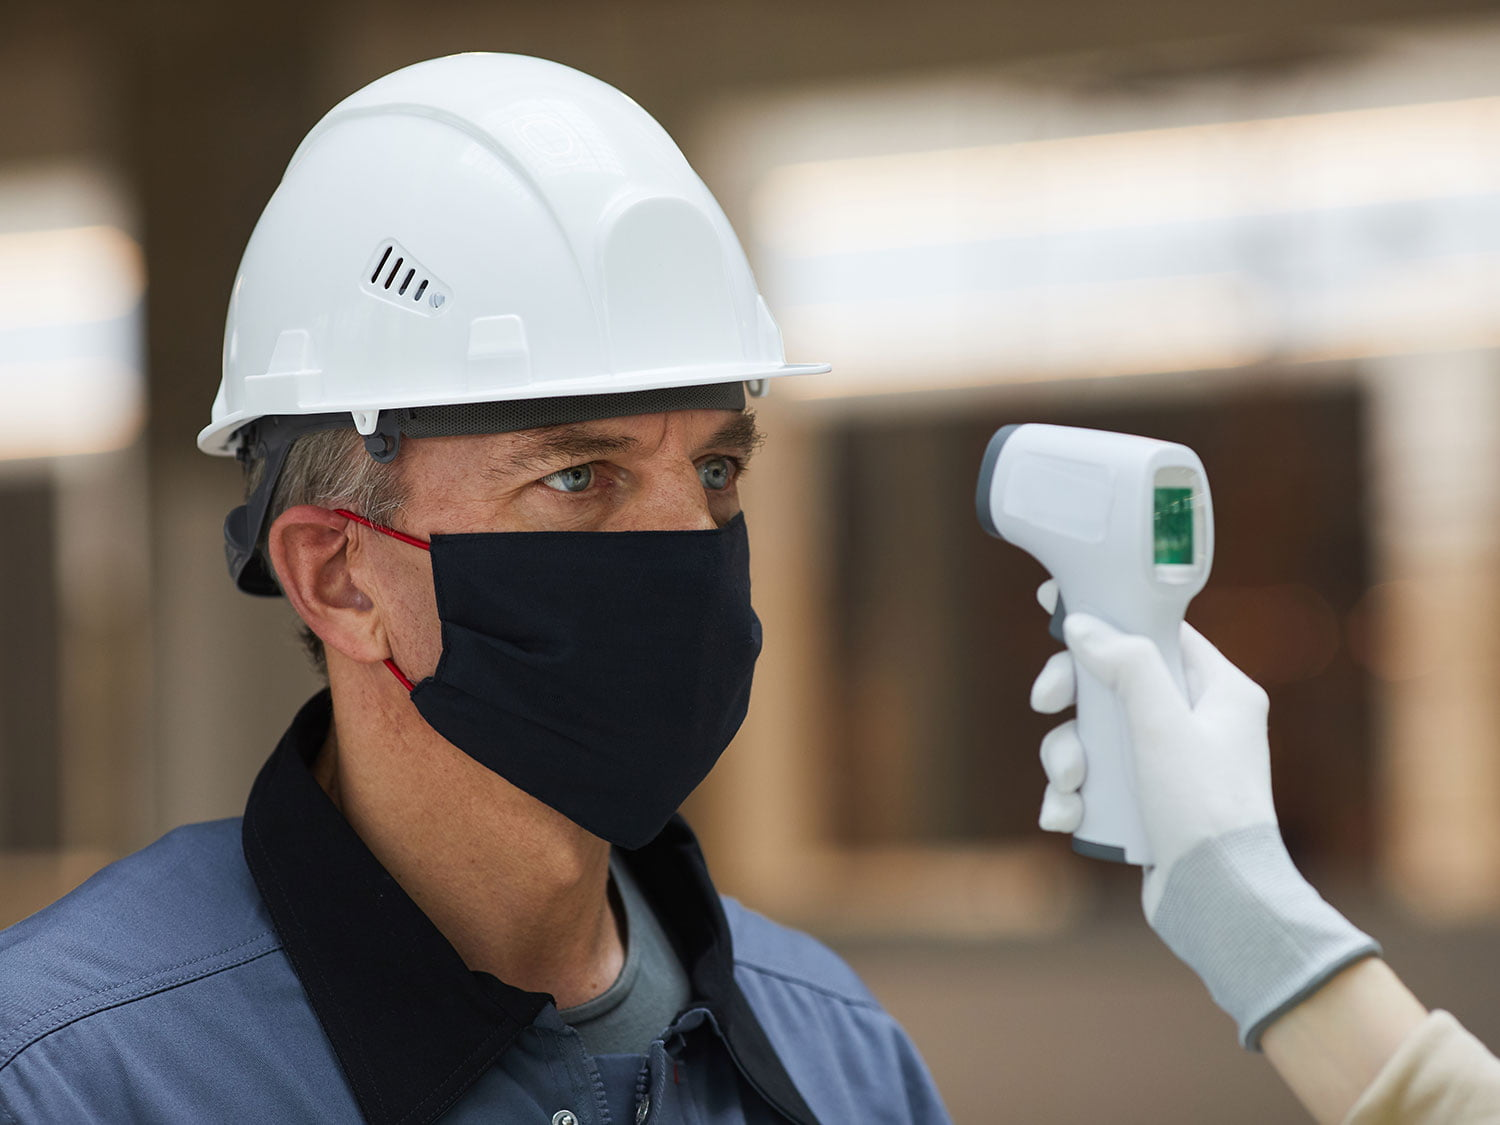 A construction worker gets a temperature check to test on-site for COVID-19